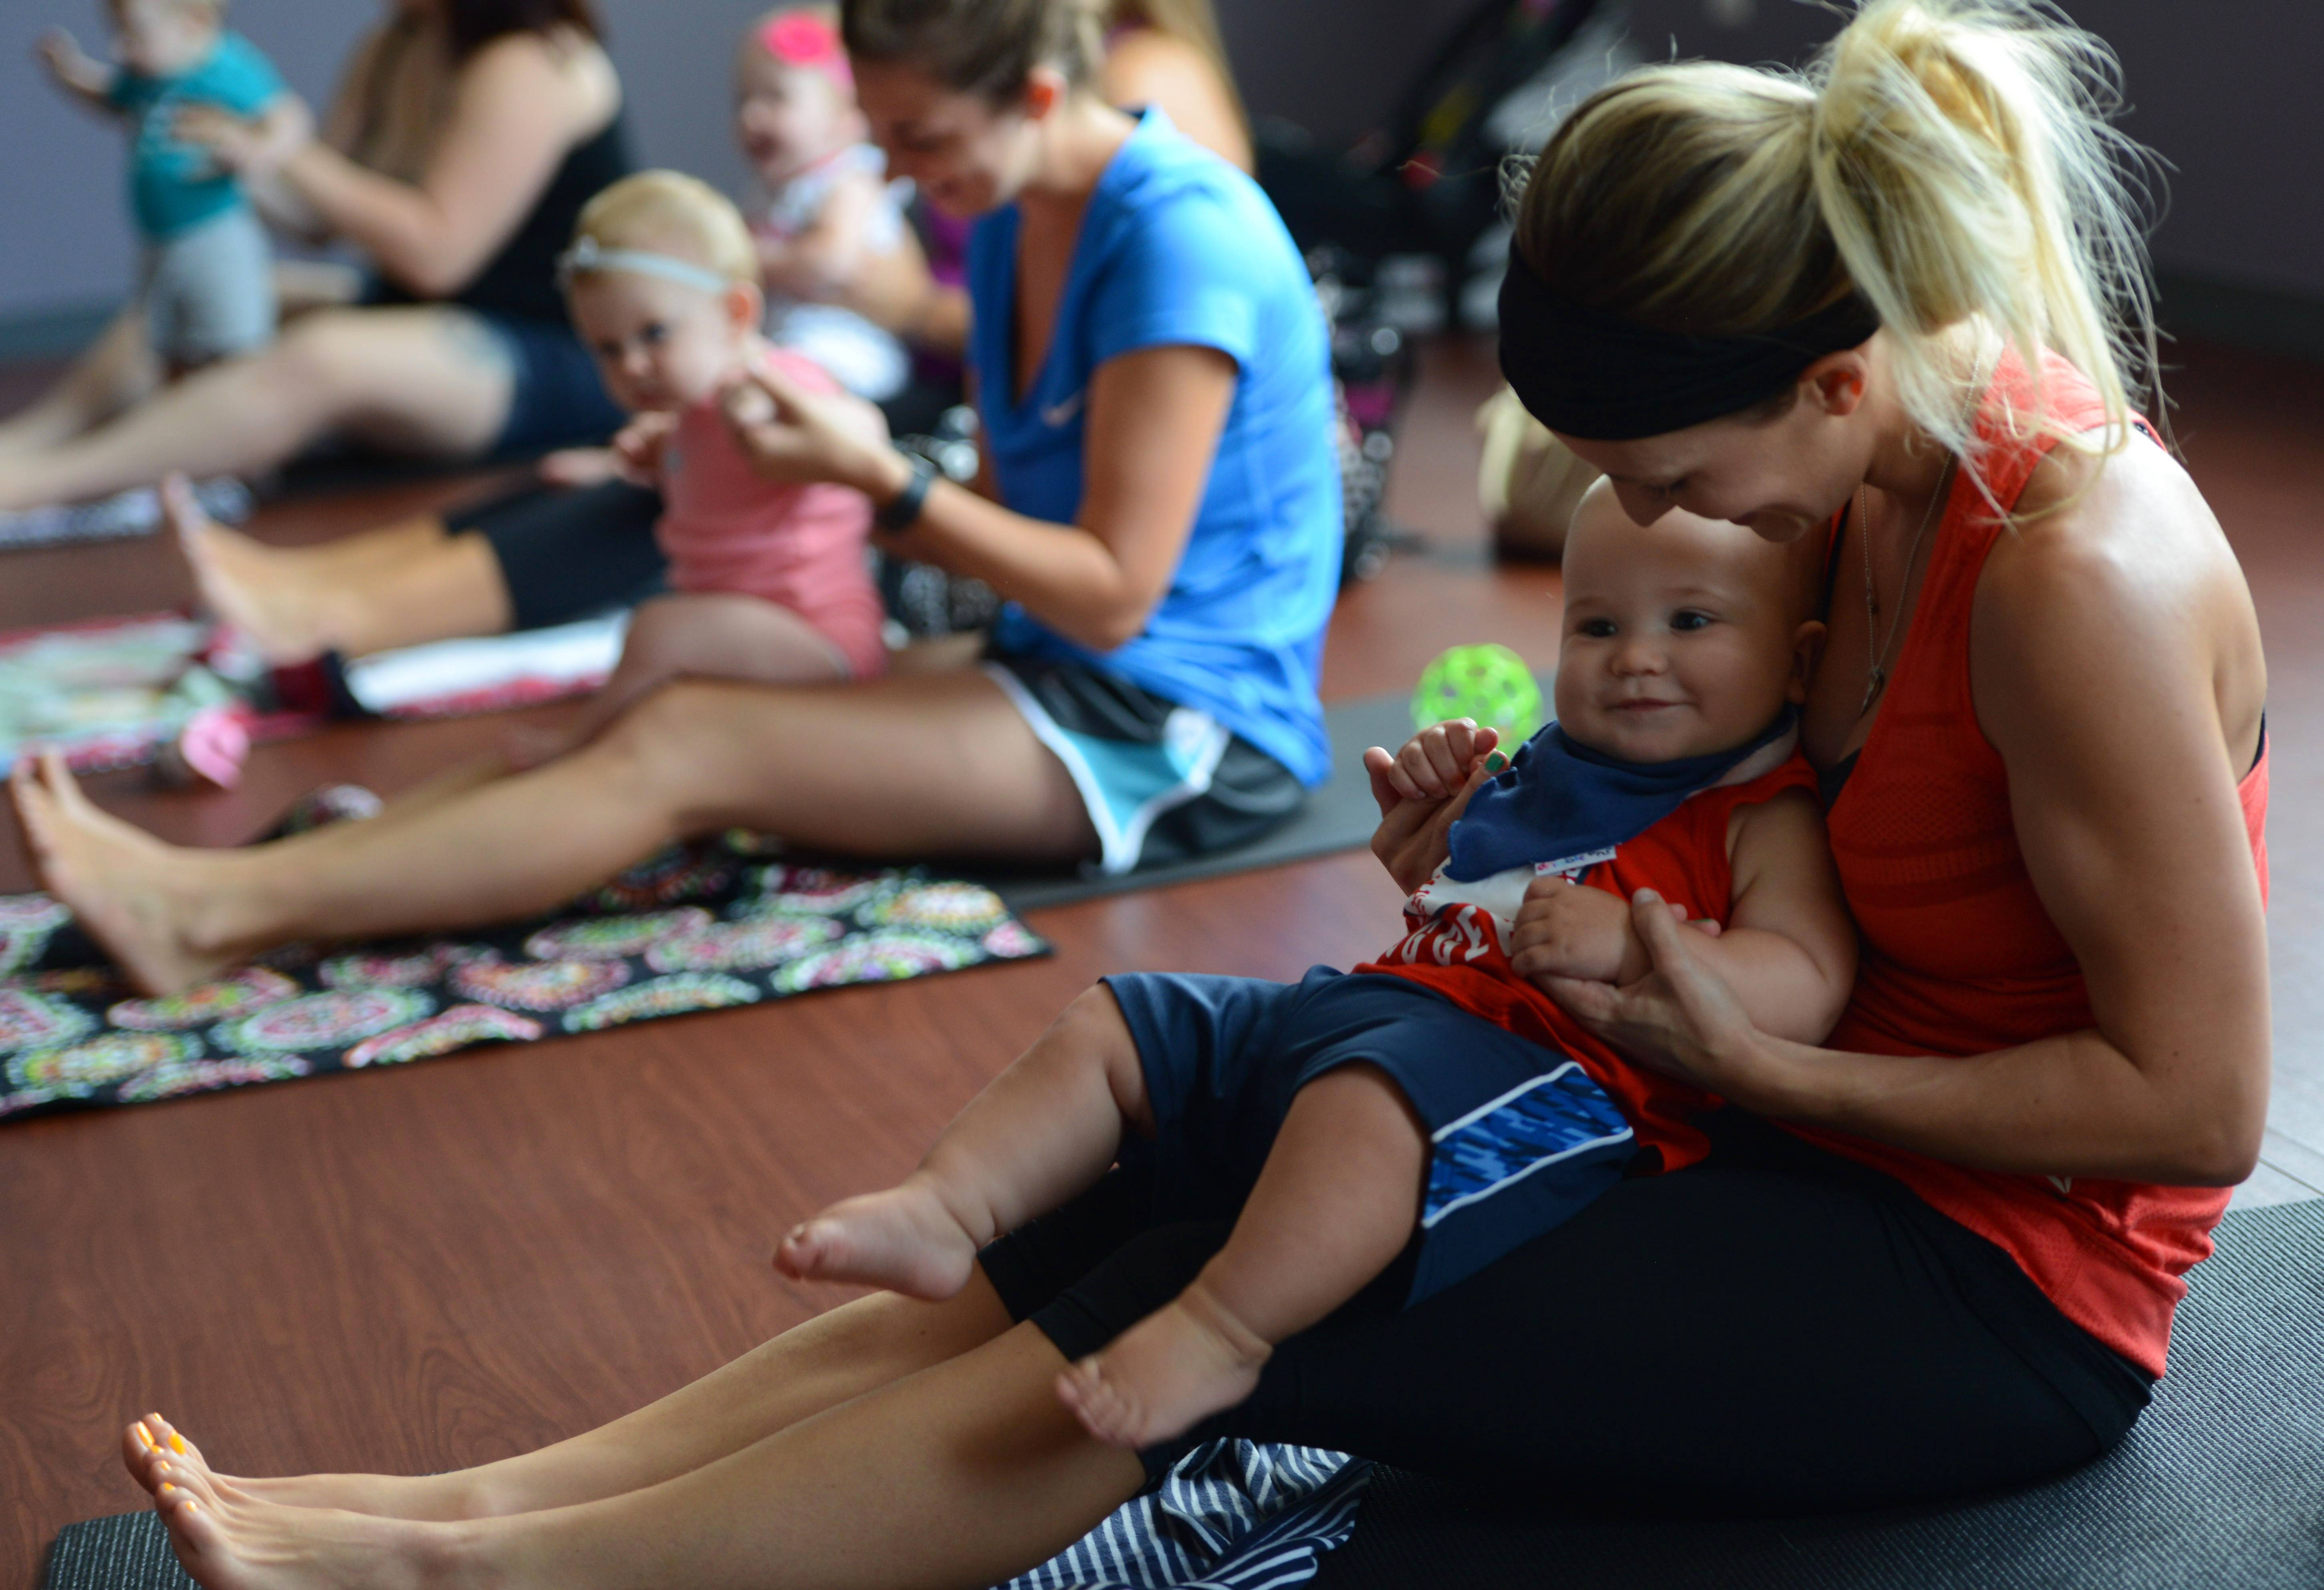 Rebecca Seidling of Lake in the Hills bounces her 8-month-old son, Vincent, on her lap Friday during Liz Gregerson's ohm Mother baby yoga class in West Dundee.